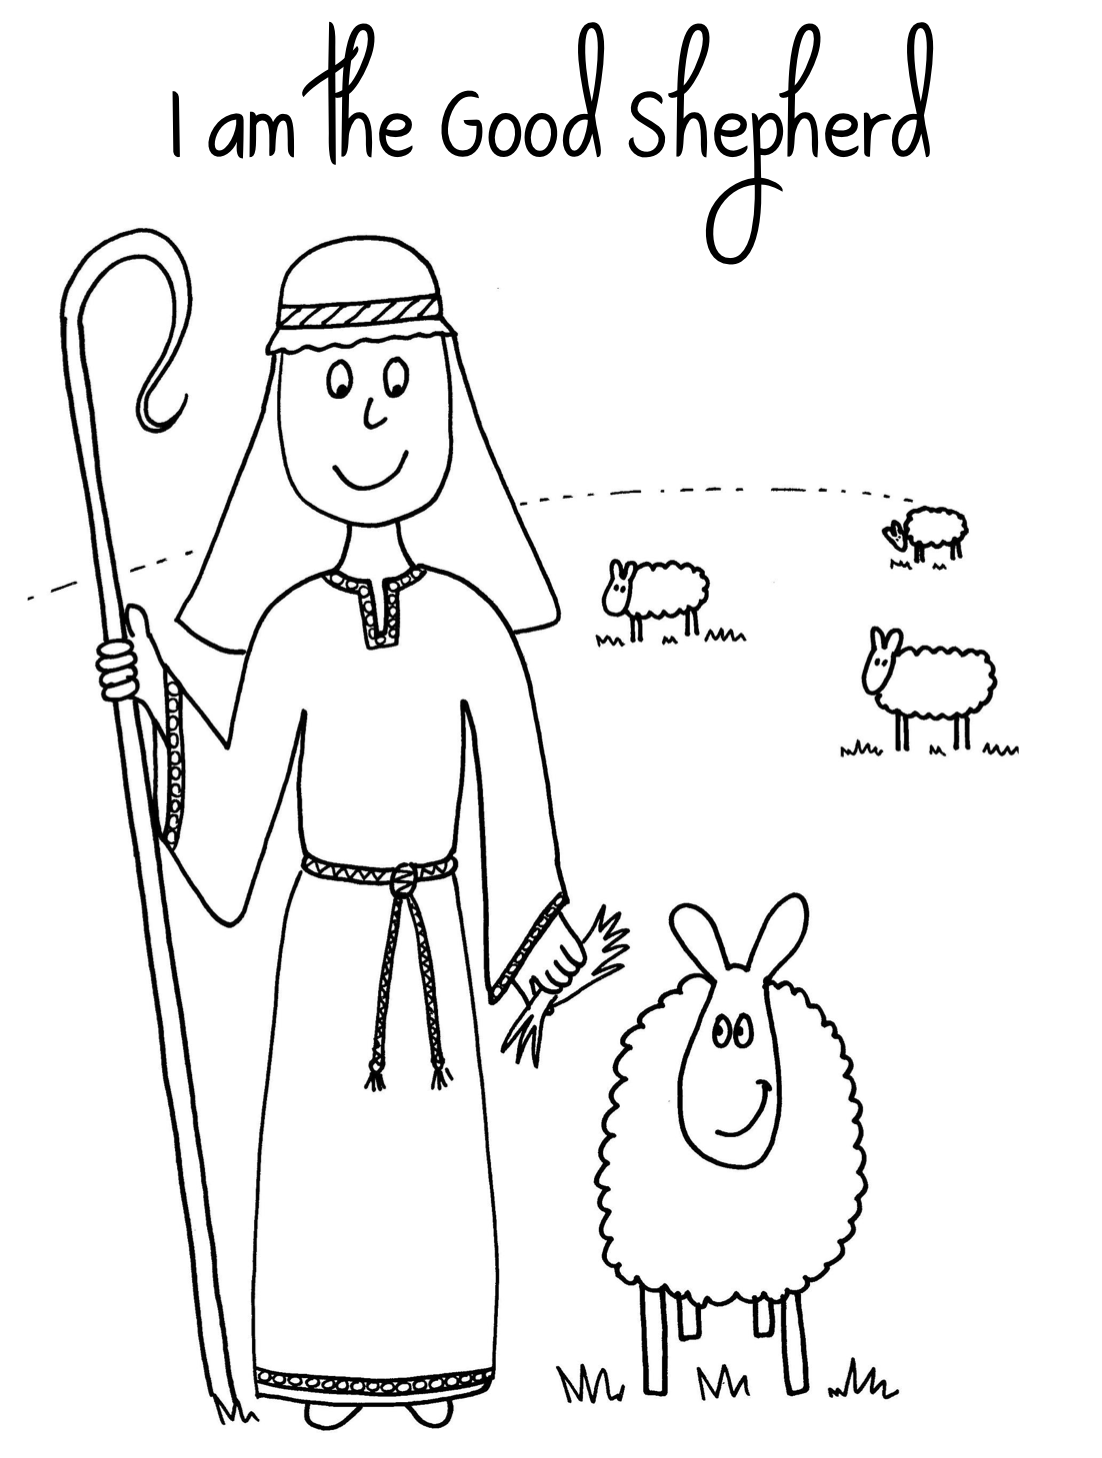 Coloring Pages Jesus The Good Shepherd Coloring Pages 1000 images about the lost sheepjesus is good shepherd on pinterest coins maze and colouring pages